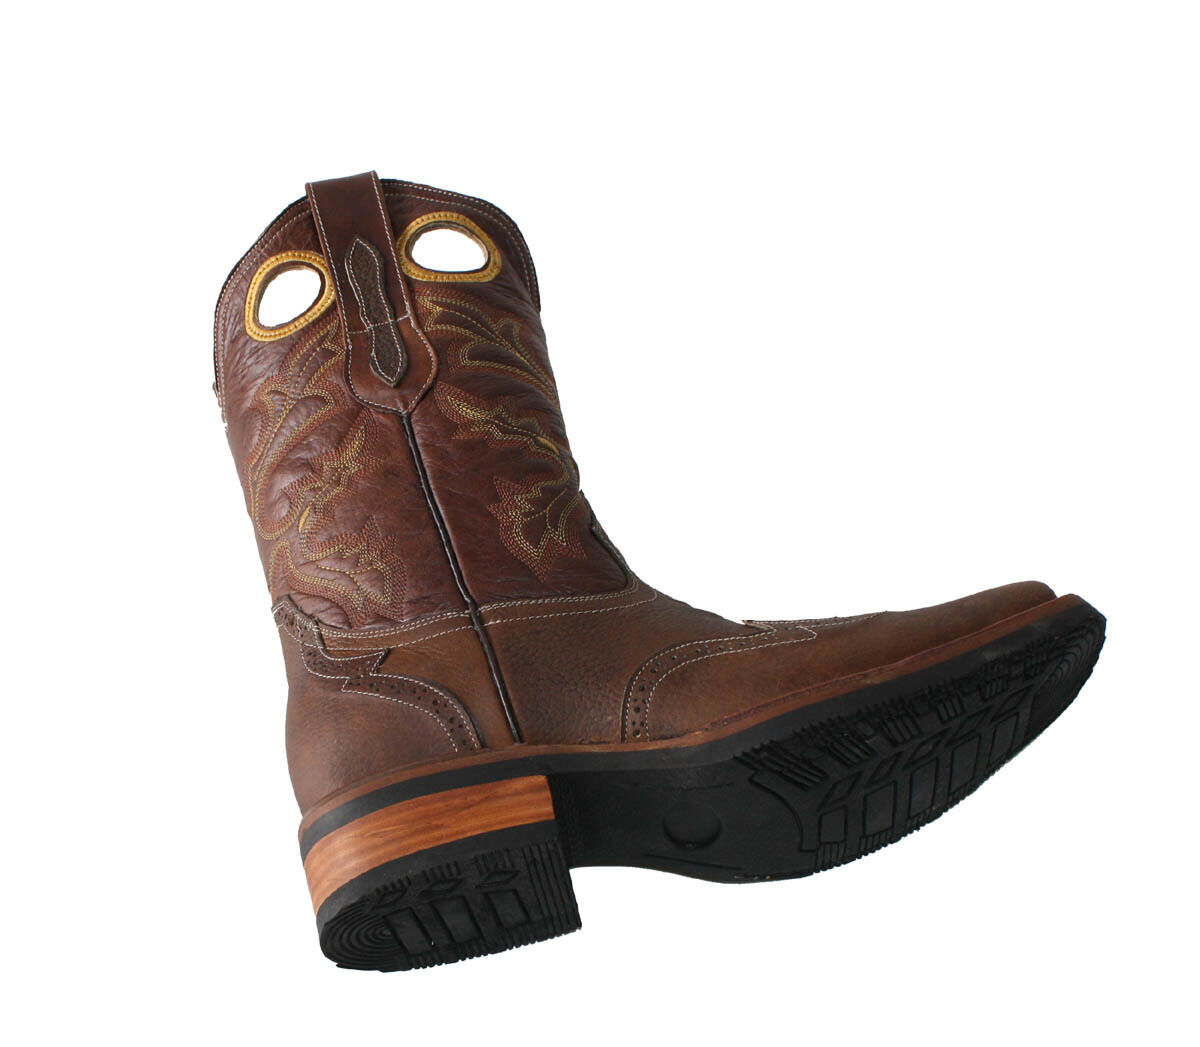 Men's Leather Cowboy Boots Animal Print  SPECIAL PRICE 89.99 Style